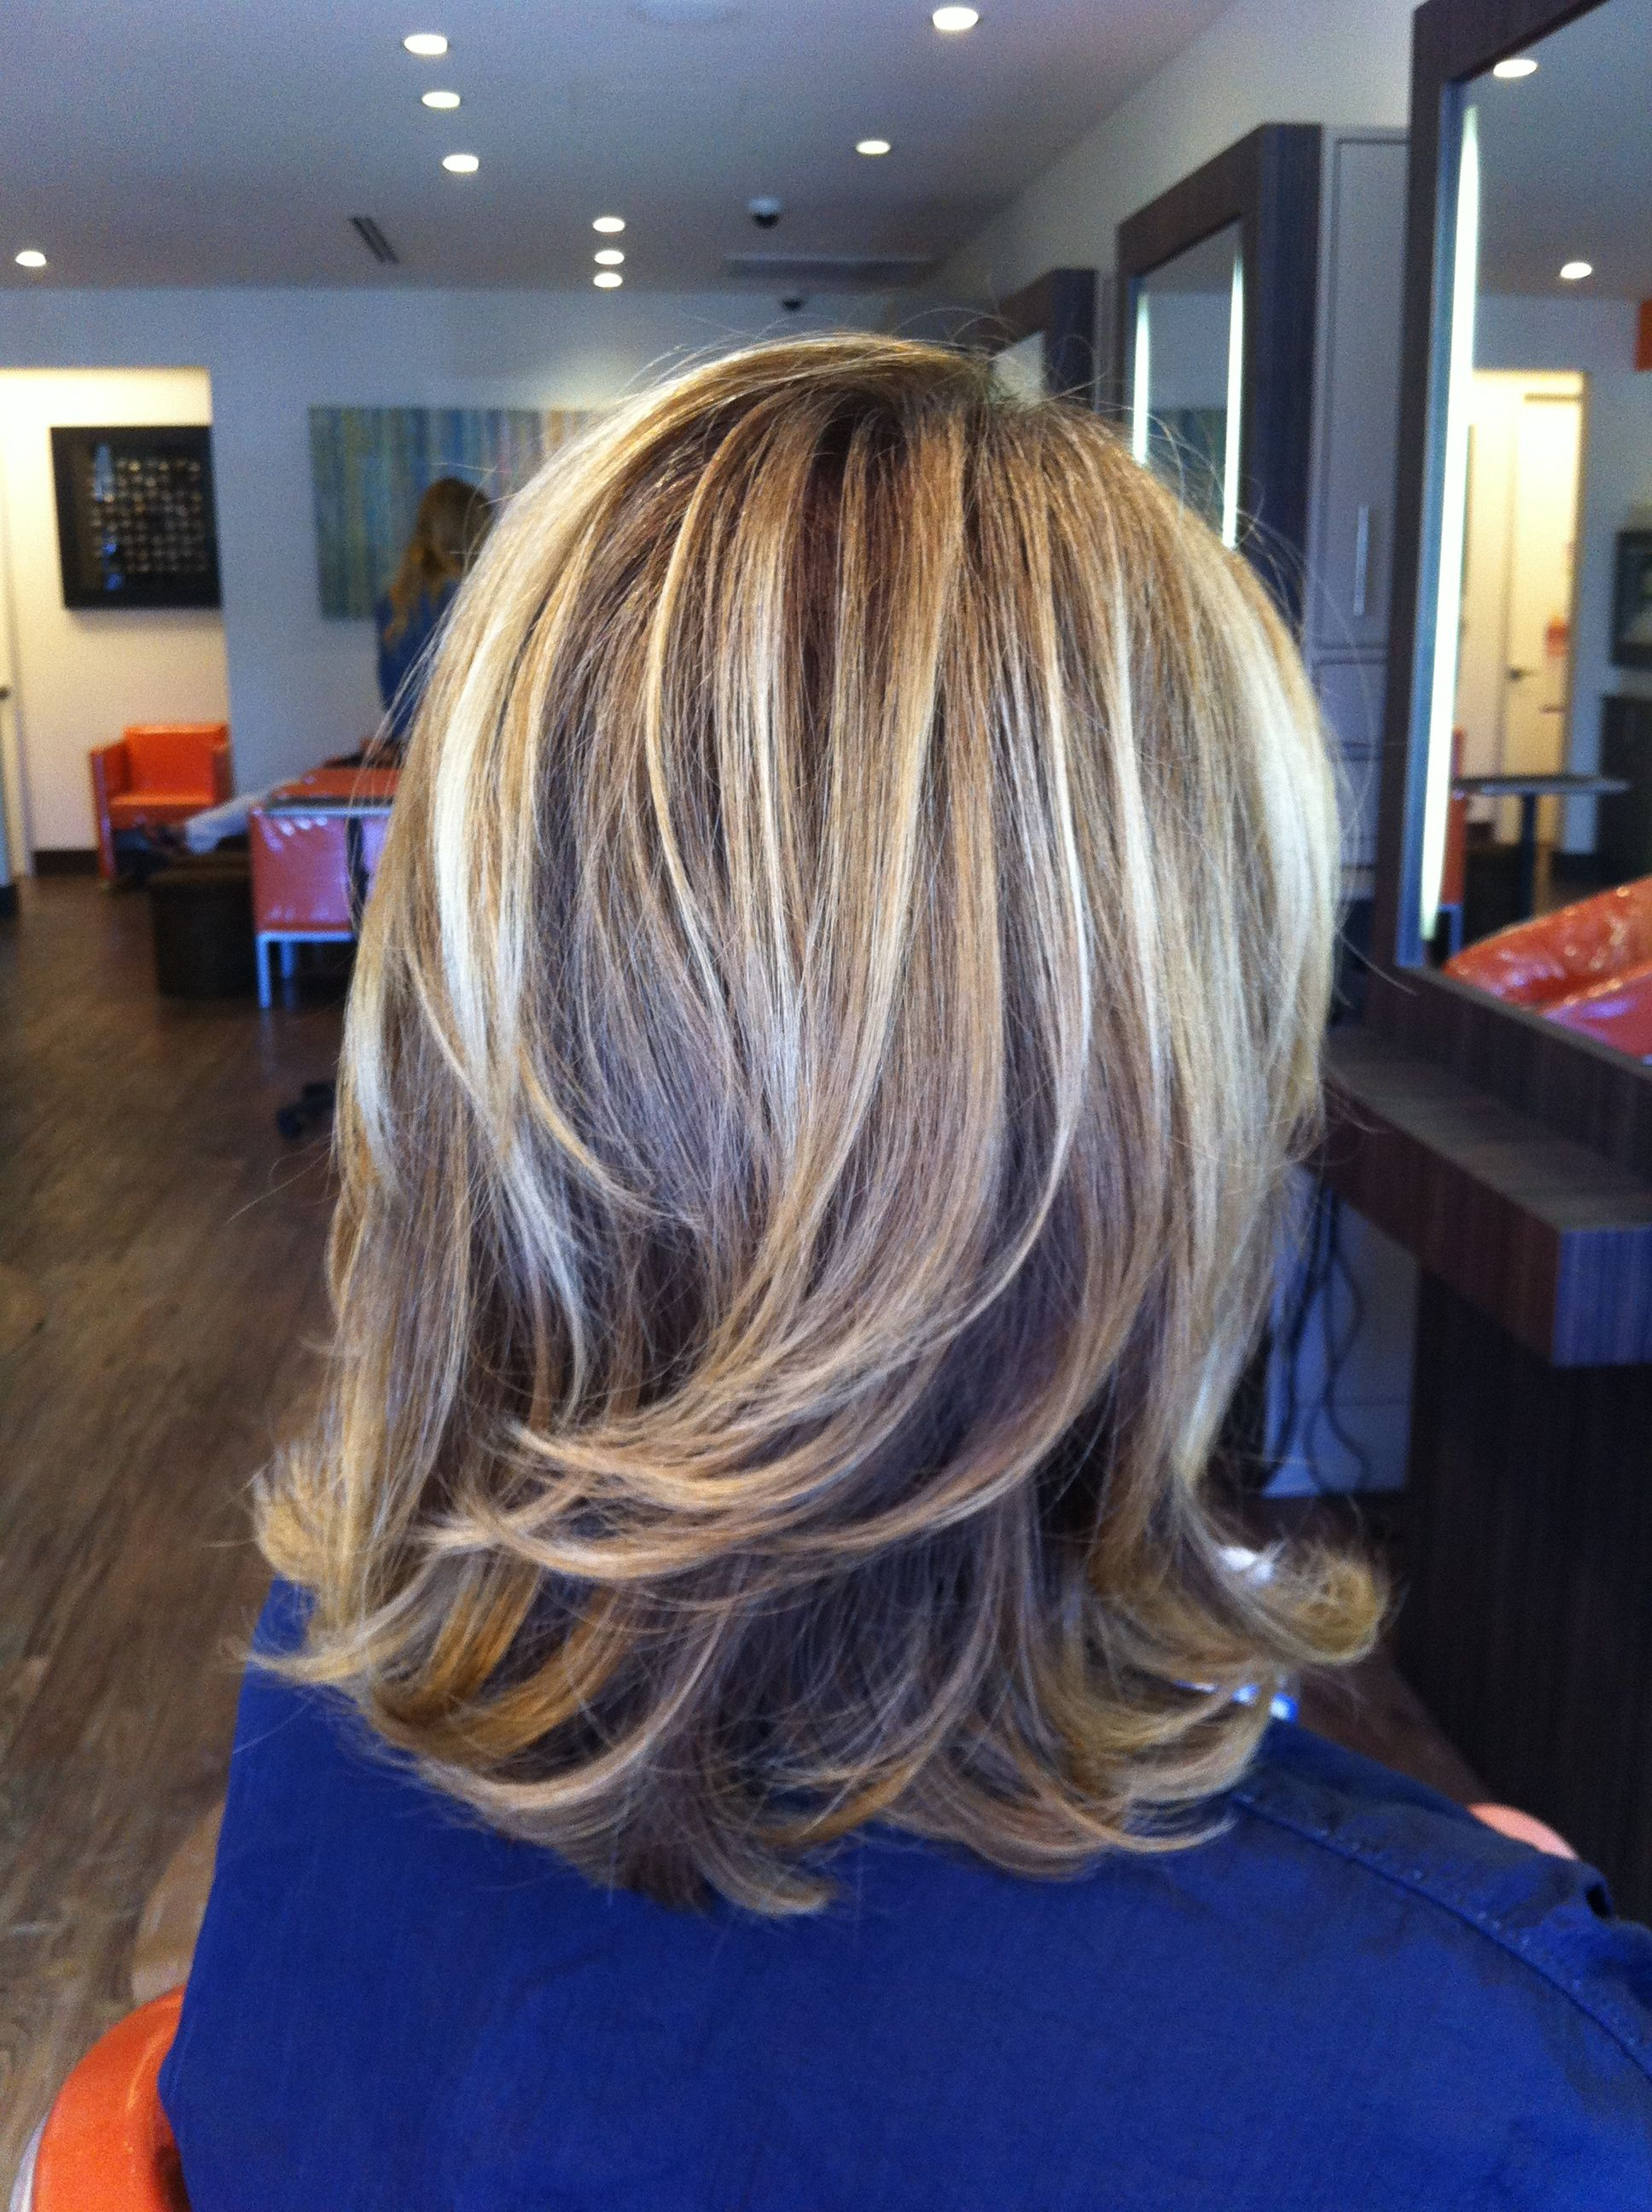 Find local hair stylists, redeem coupons, and read or watch expert advice | Hair Hookups